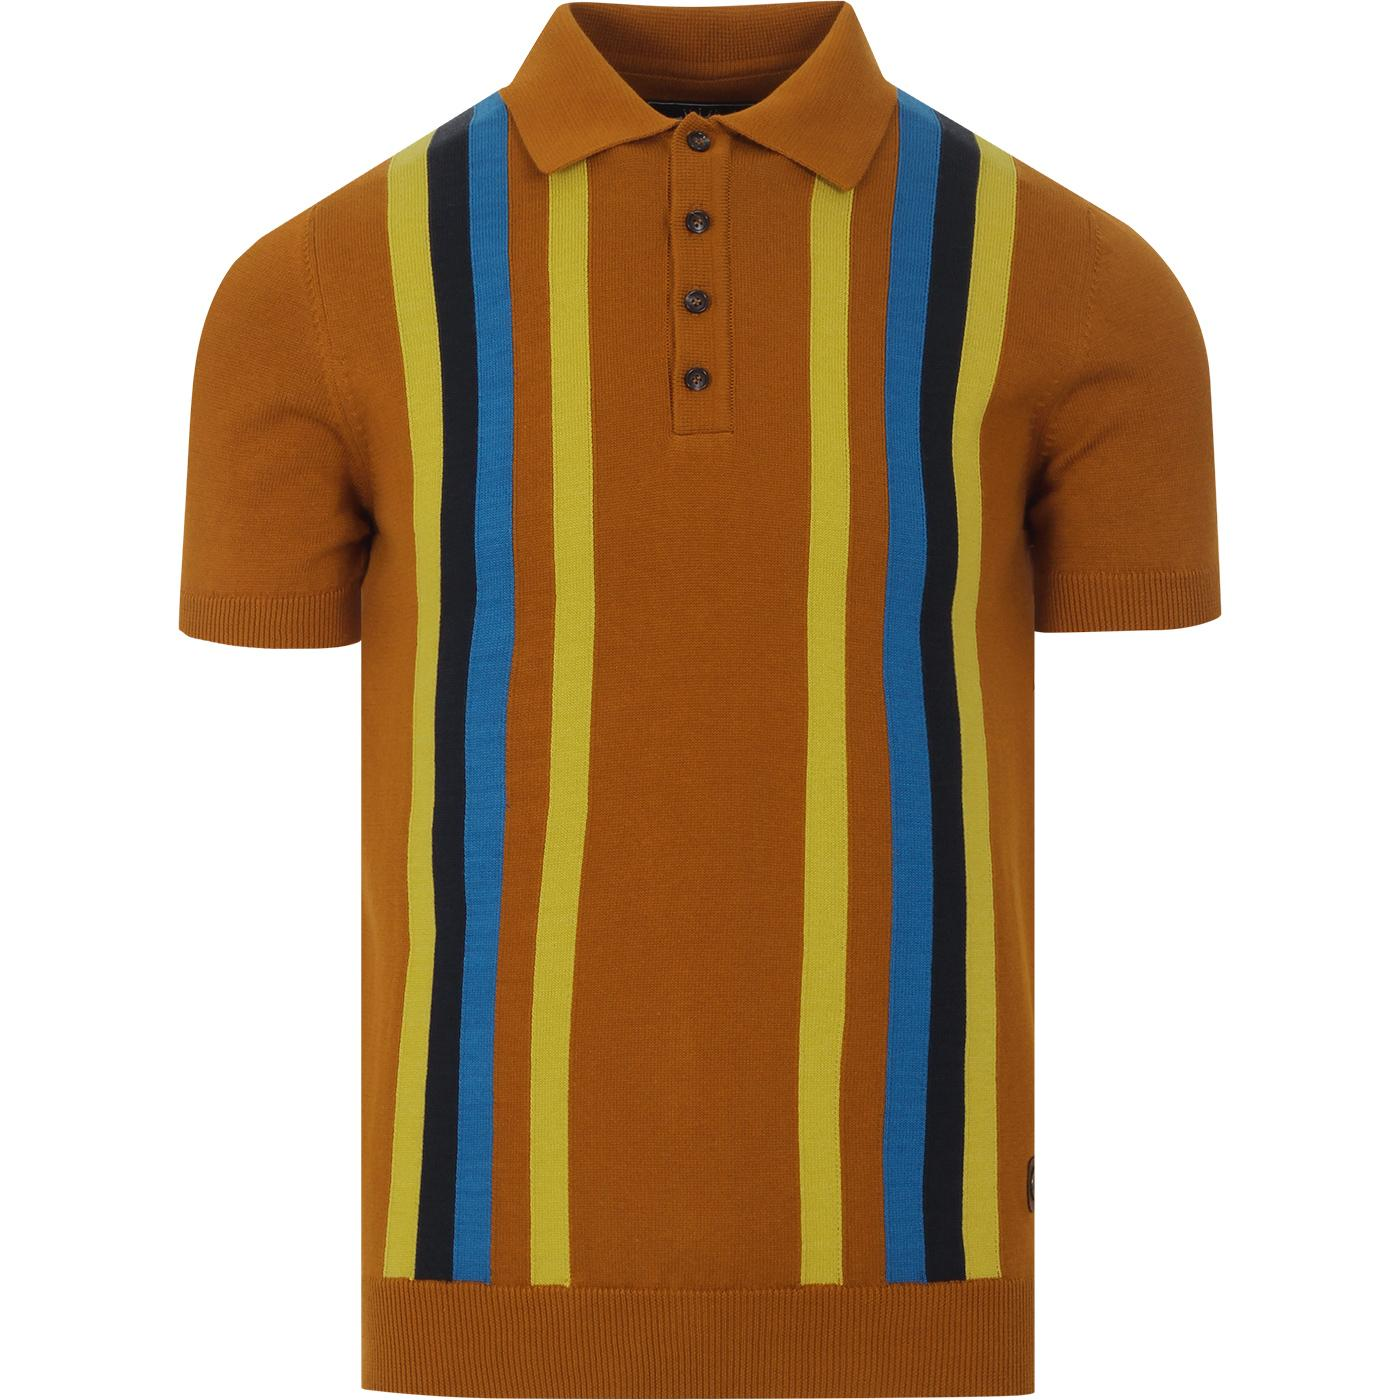 TROJAN RECORDS Mod Multi Stripe Knit Polo Top (GT)